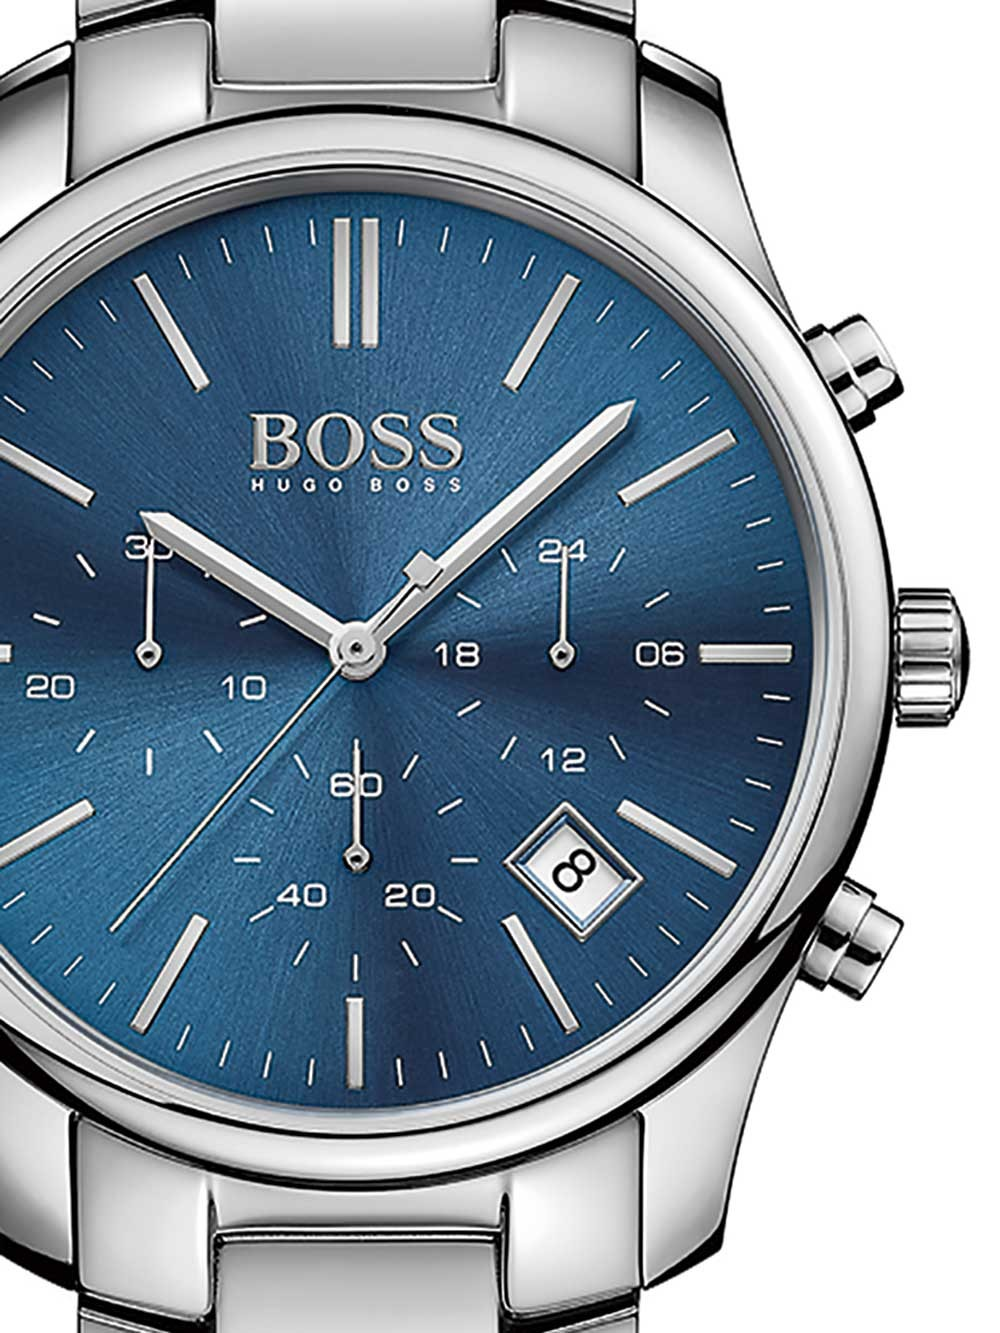 uhren chrono12 hugo boss 1513434 time one chronograph. Black Bedroom Furniture Sets. Home Design Ideas